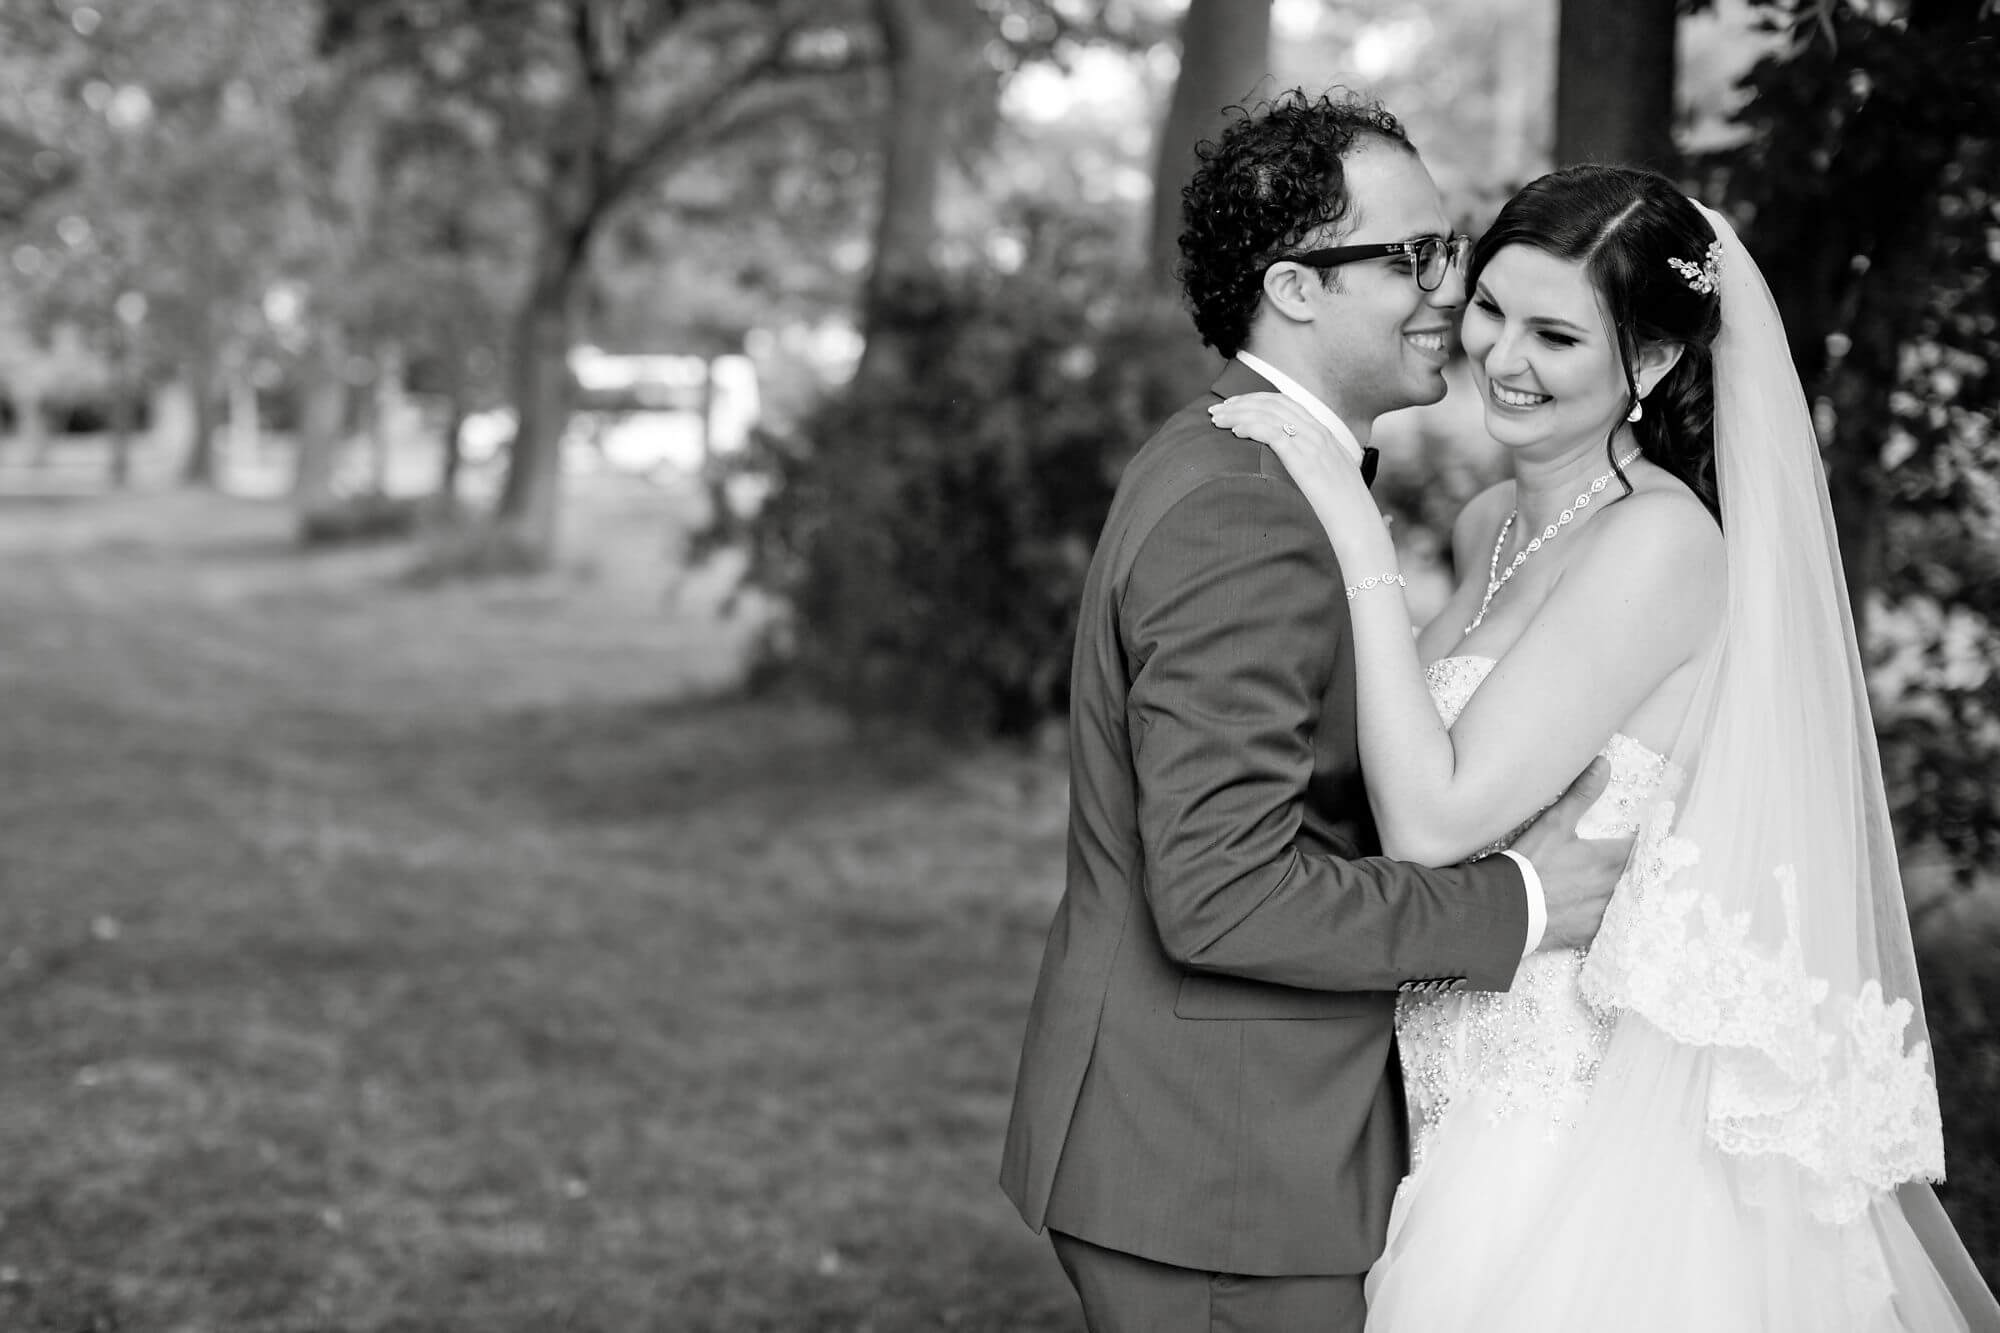 Black and white photo of bride and groom holding each other sweetly outside in nature - Niagara wedding - Historia Wedding and Event Planning